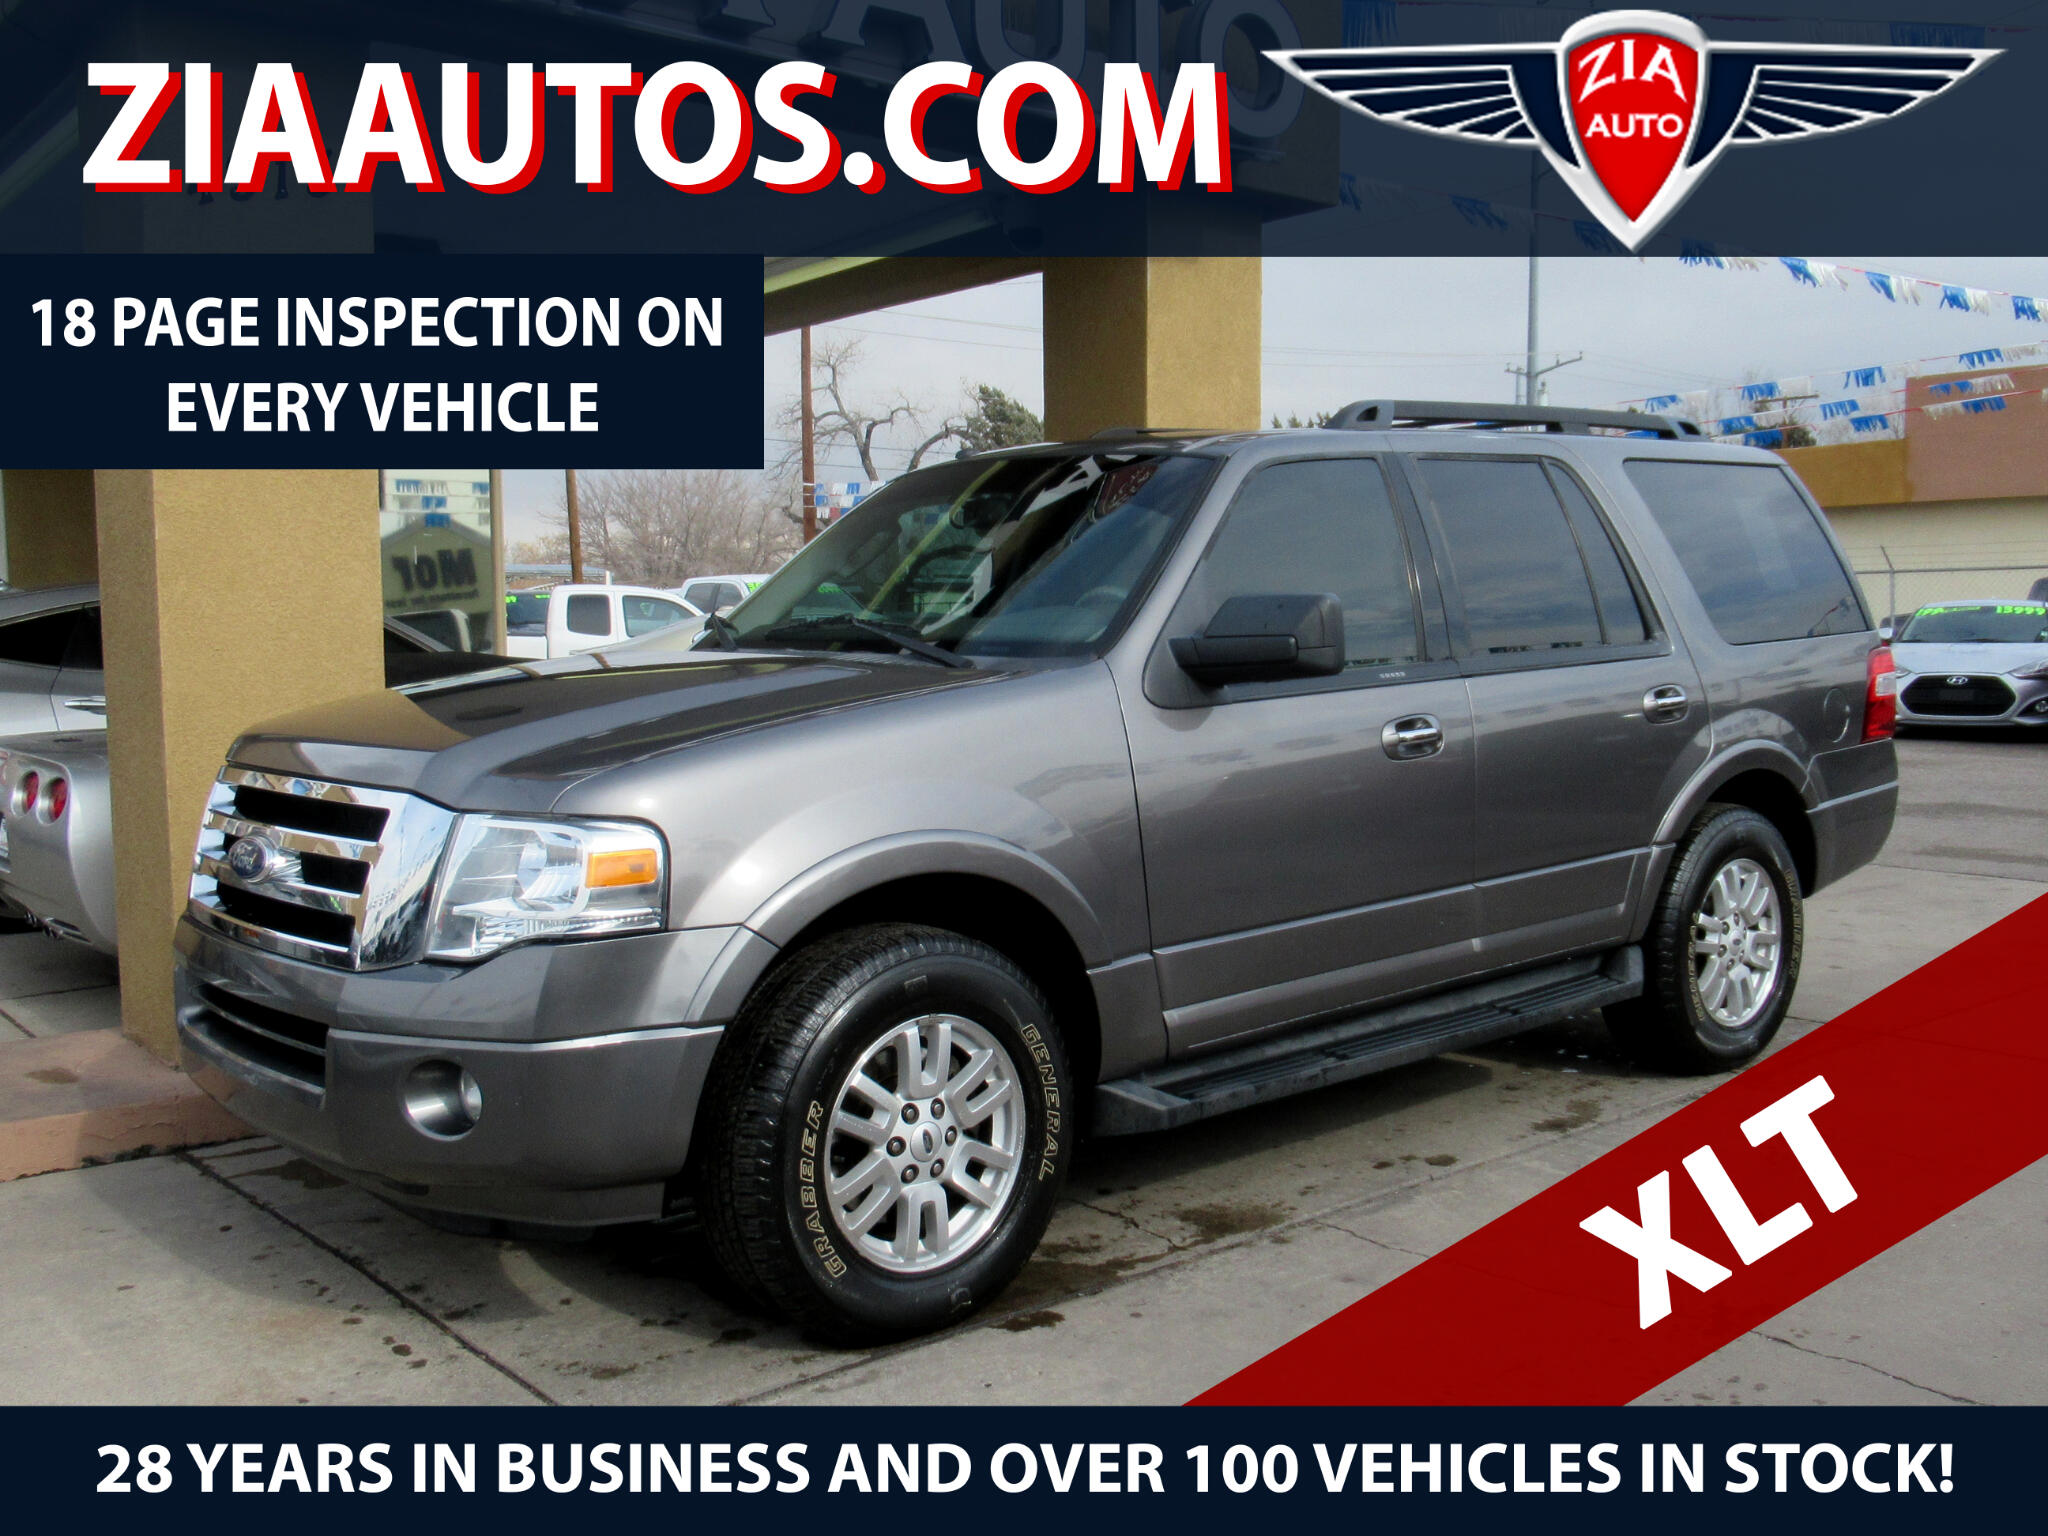 2012 Ford Expedition 2WD 4dr XLT